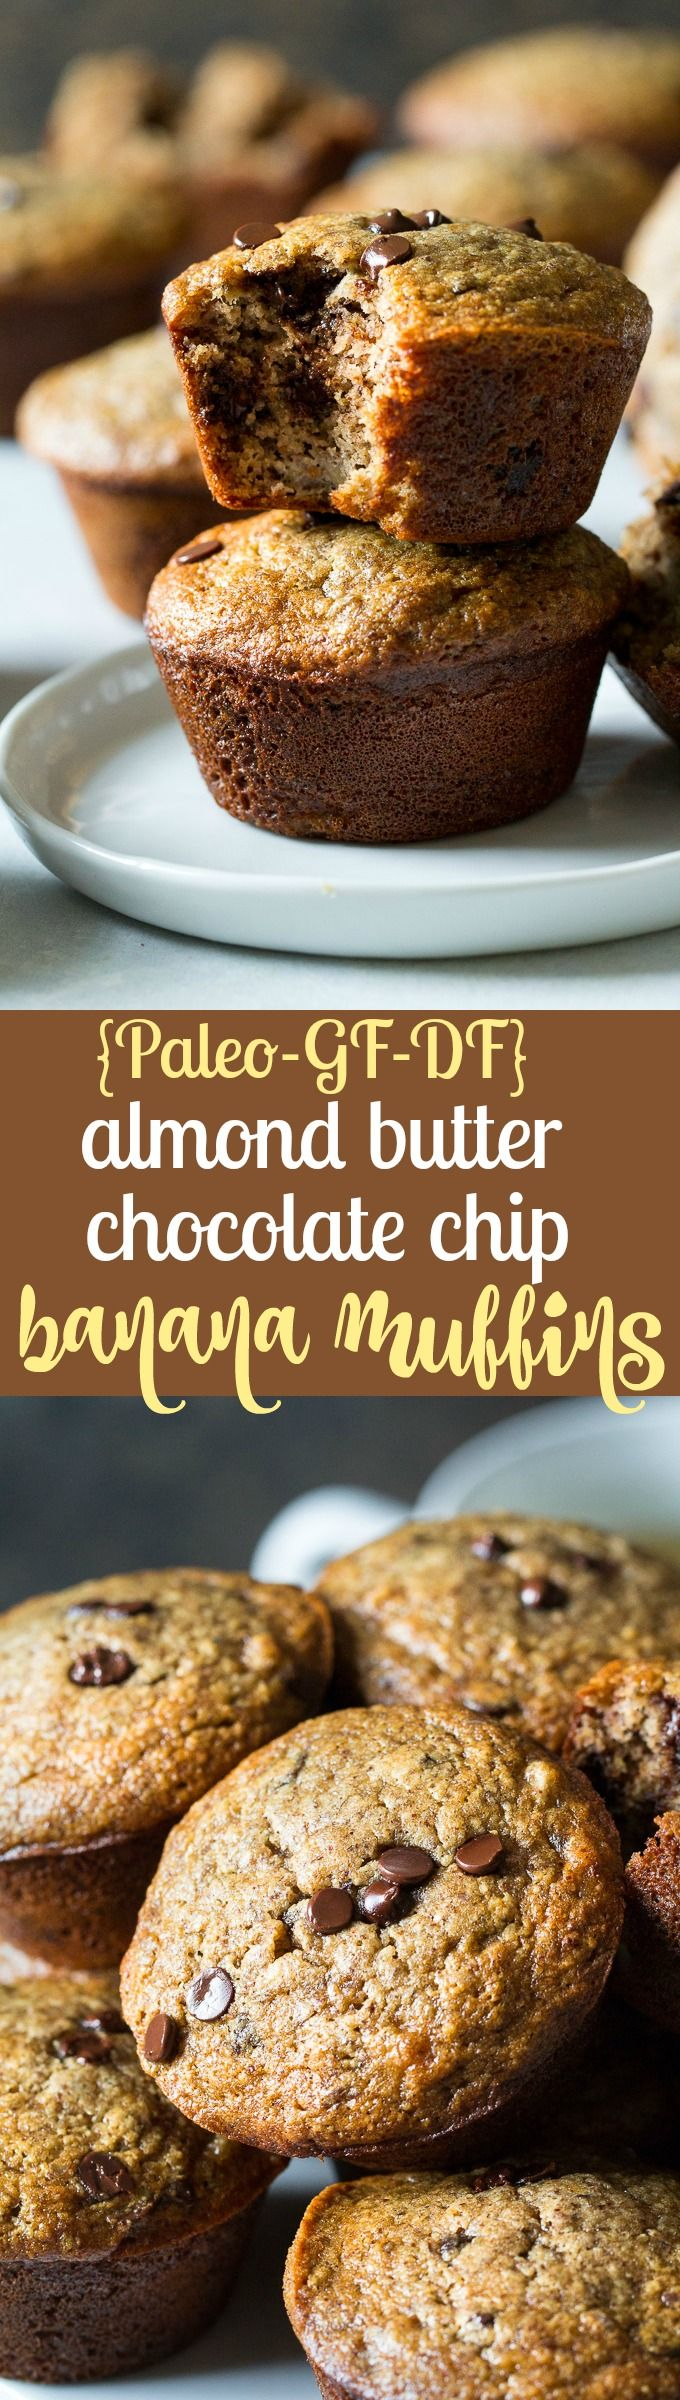 Paleo Almond Butter Banana Muffins with Flaxseed | The Paleo Running Momma